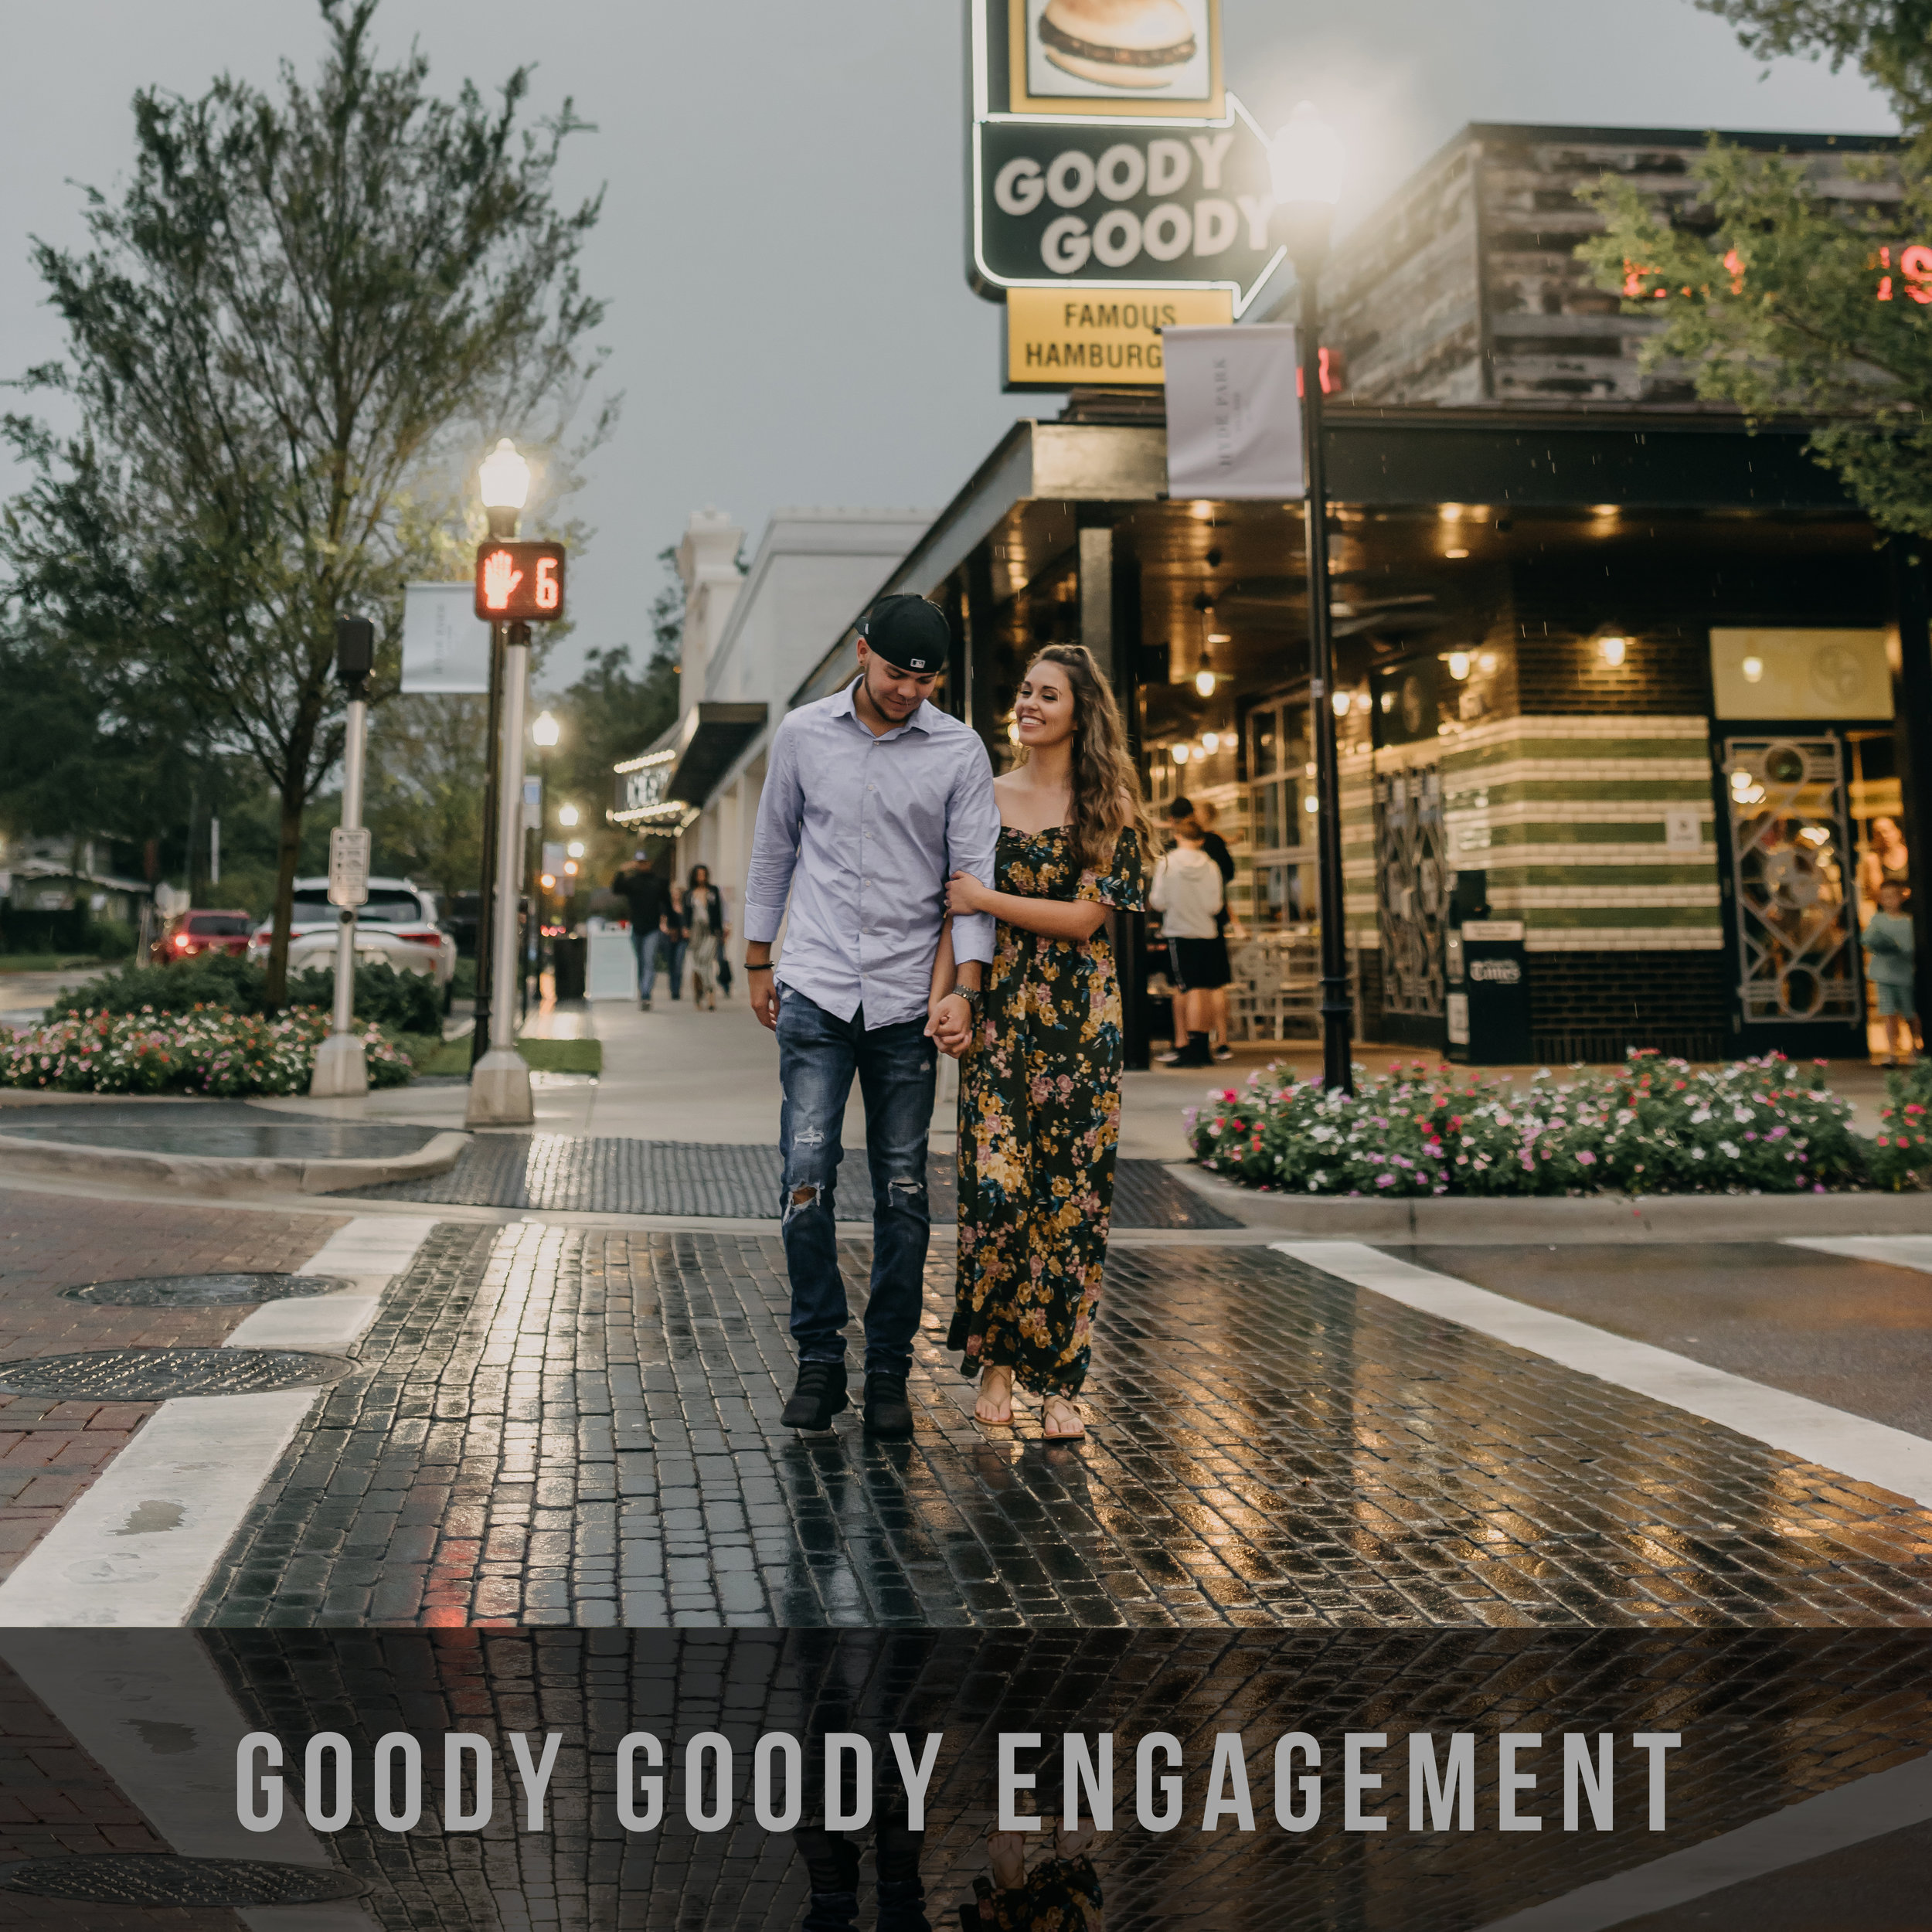 goody_goody_engagment_photography.jpg